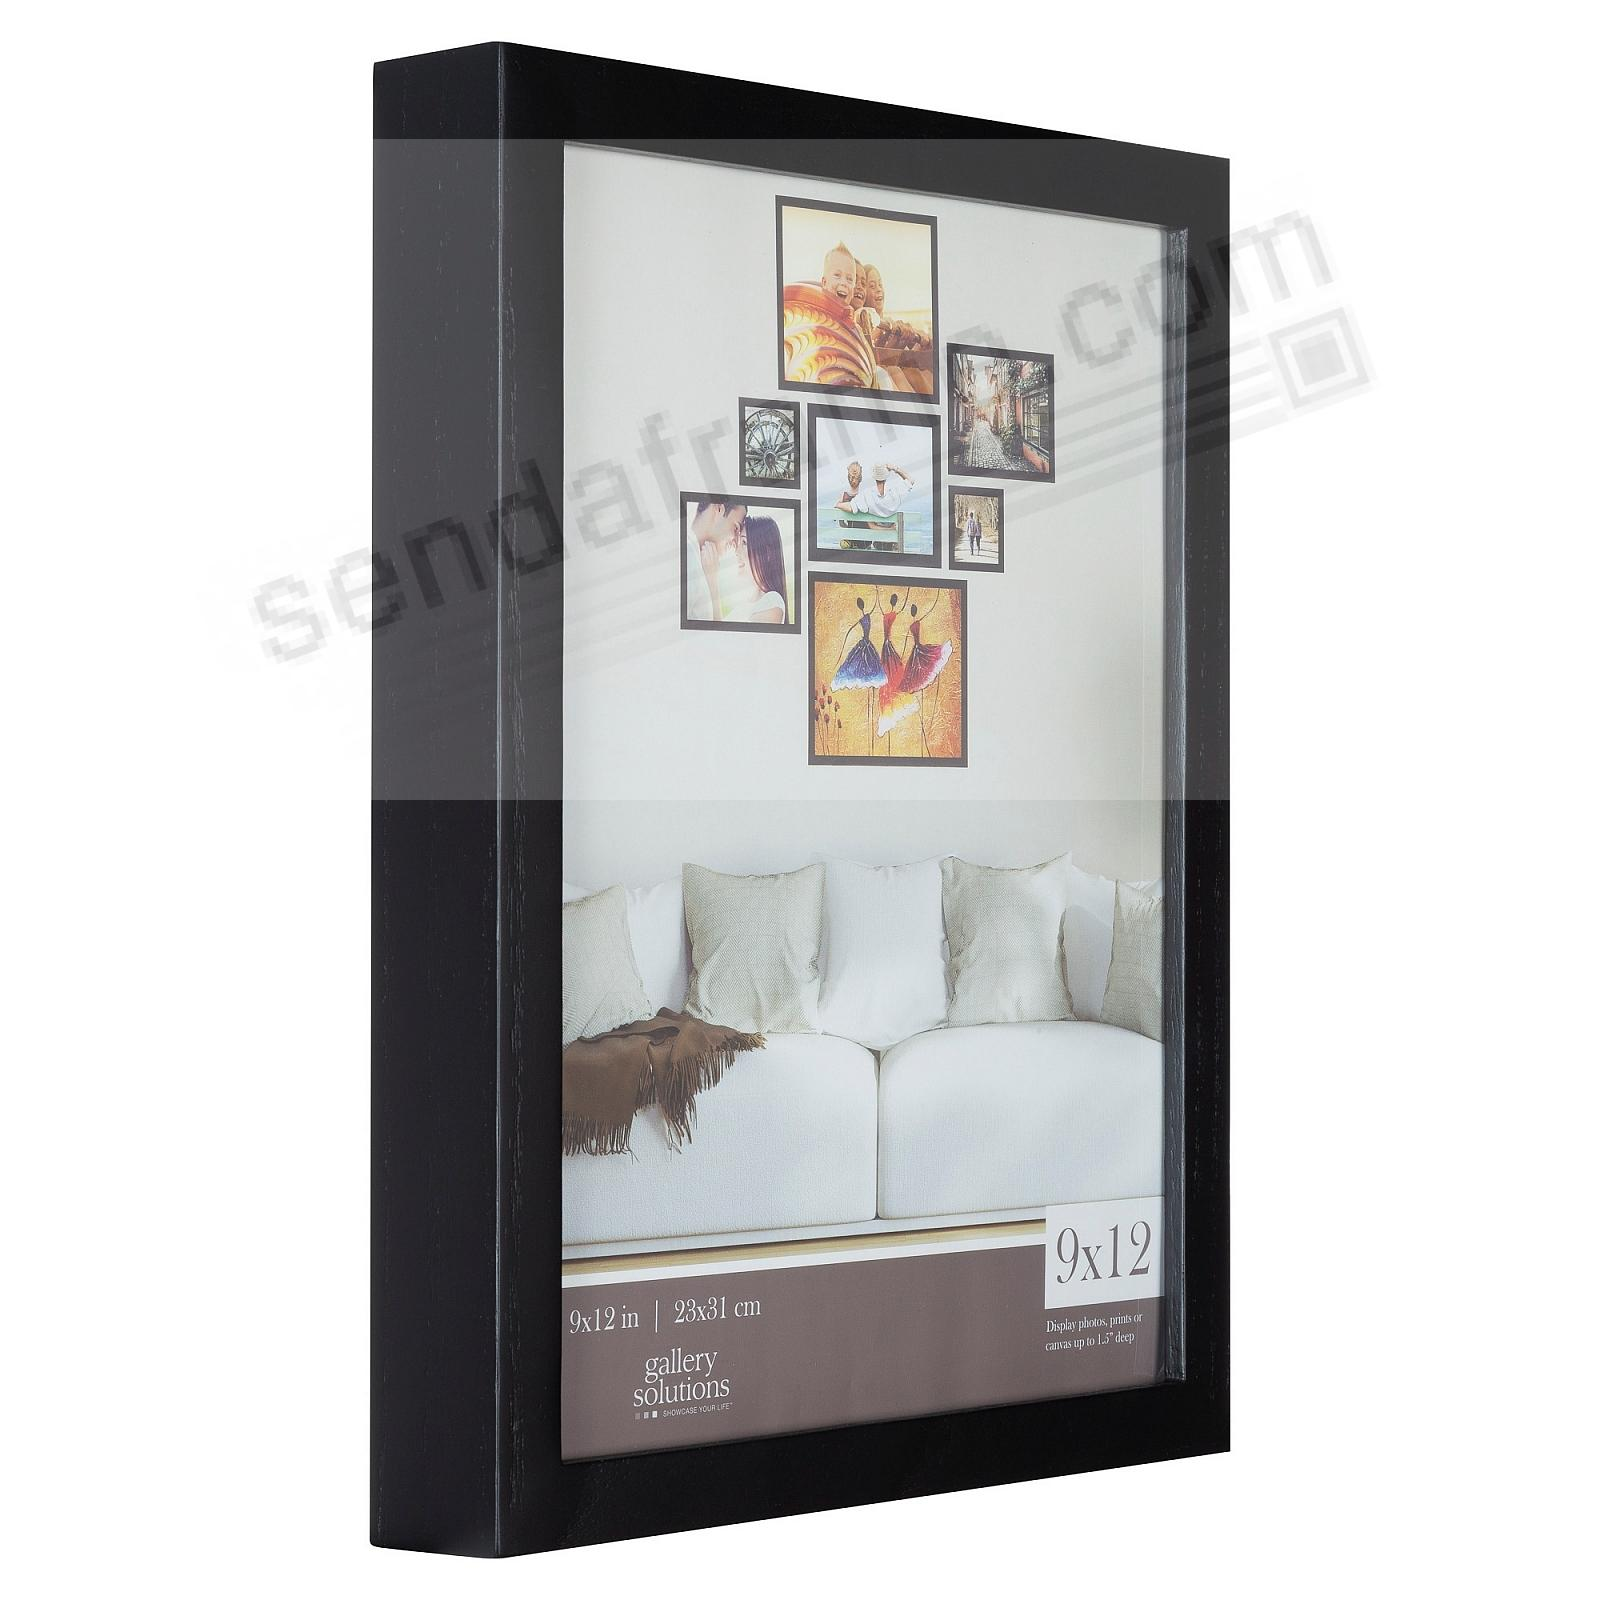 BLACK GALLERY 9x12 frame by Gallery Solutions®